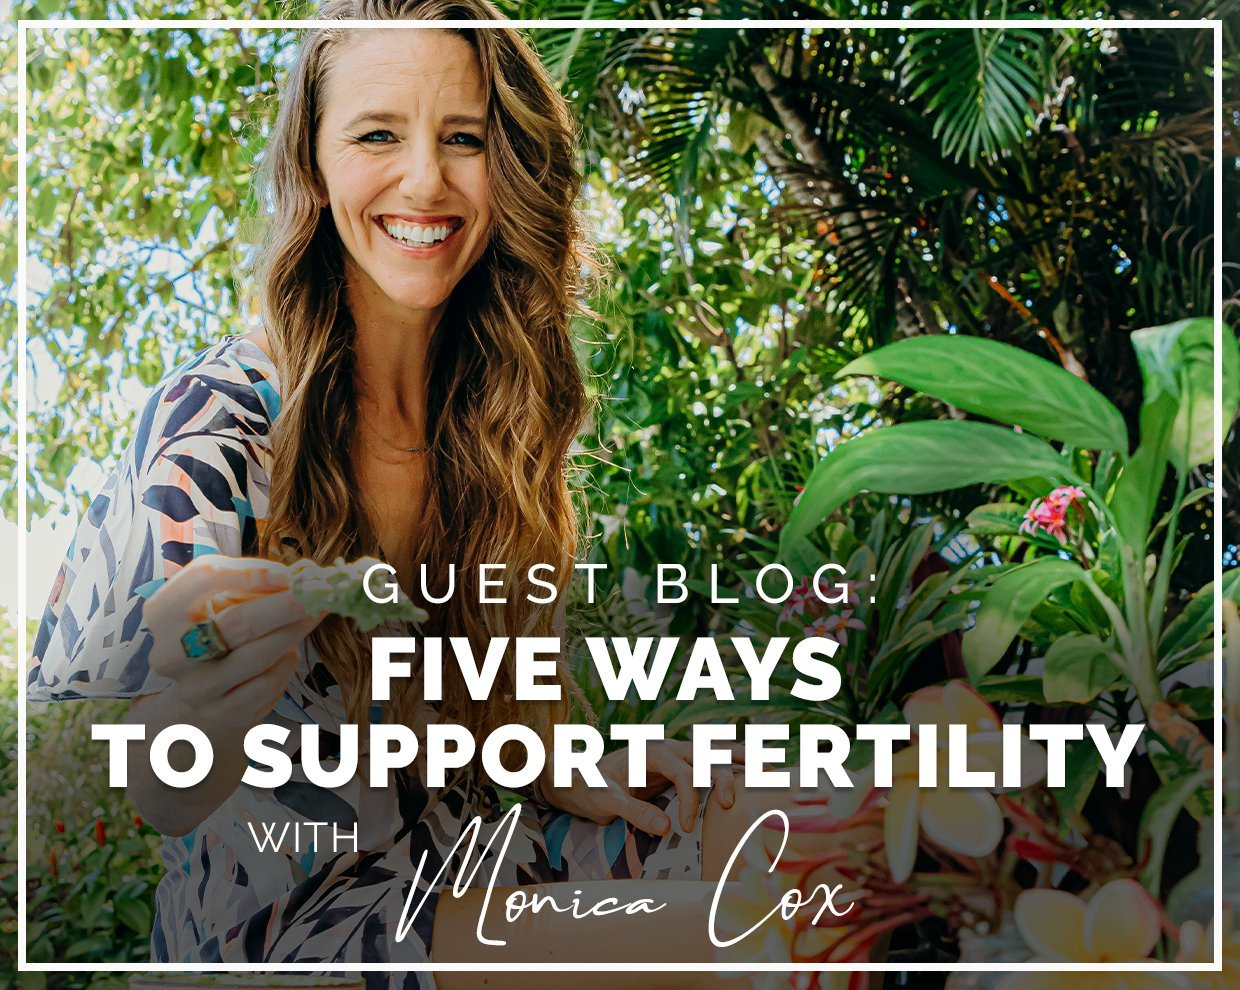 Functional health and women's fertility with Monica Cox